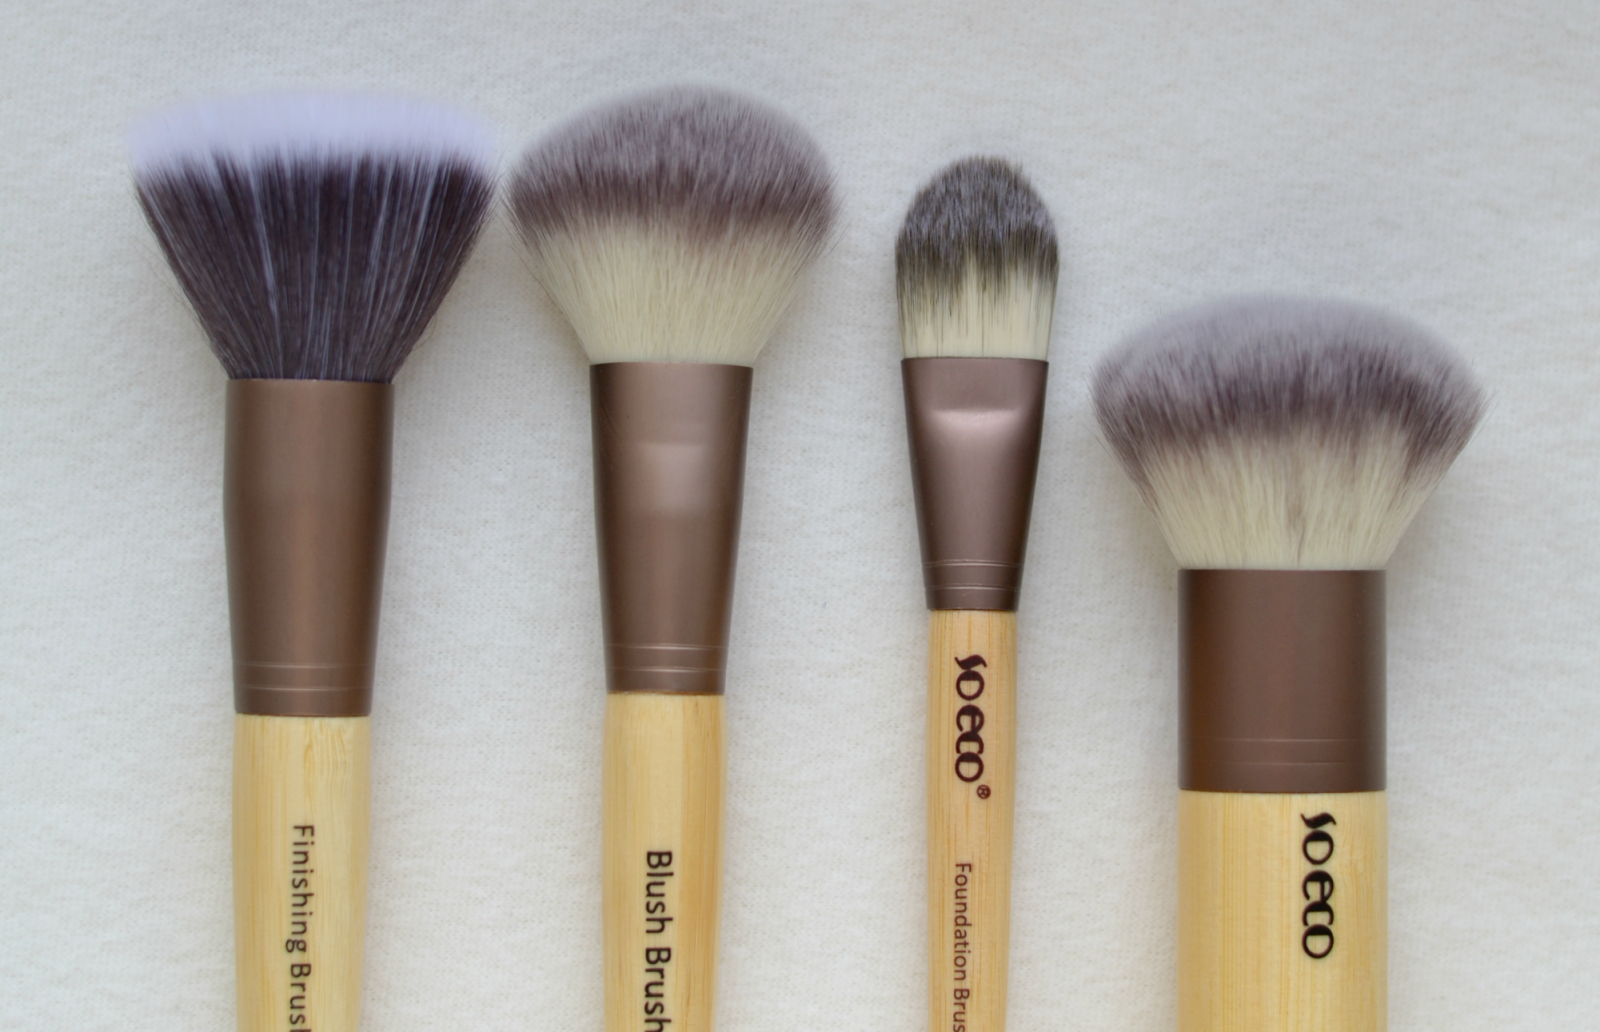 So Eco Makeup Brushes Affordable Quality, Ethically